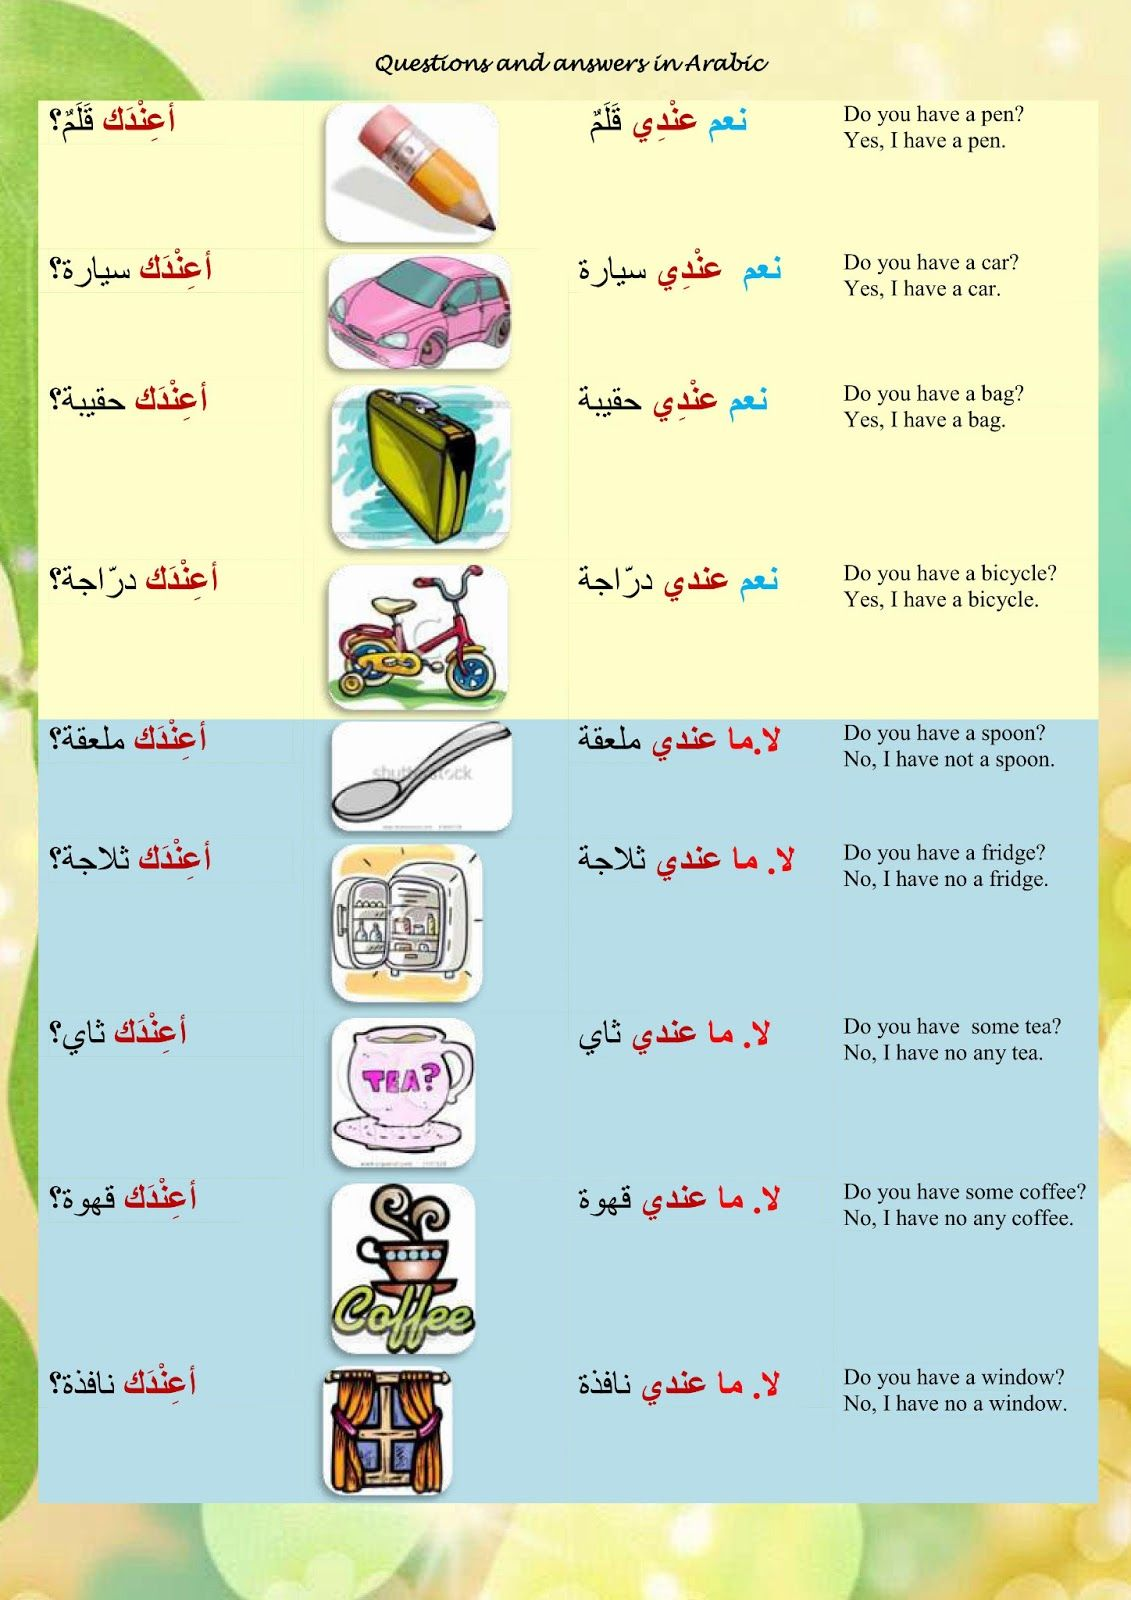 Questions And Answers In Arabic